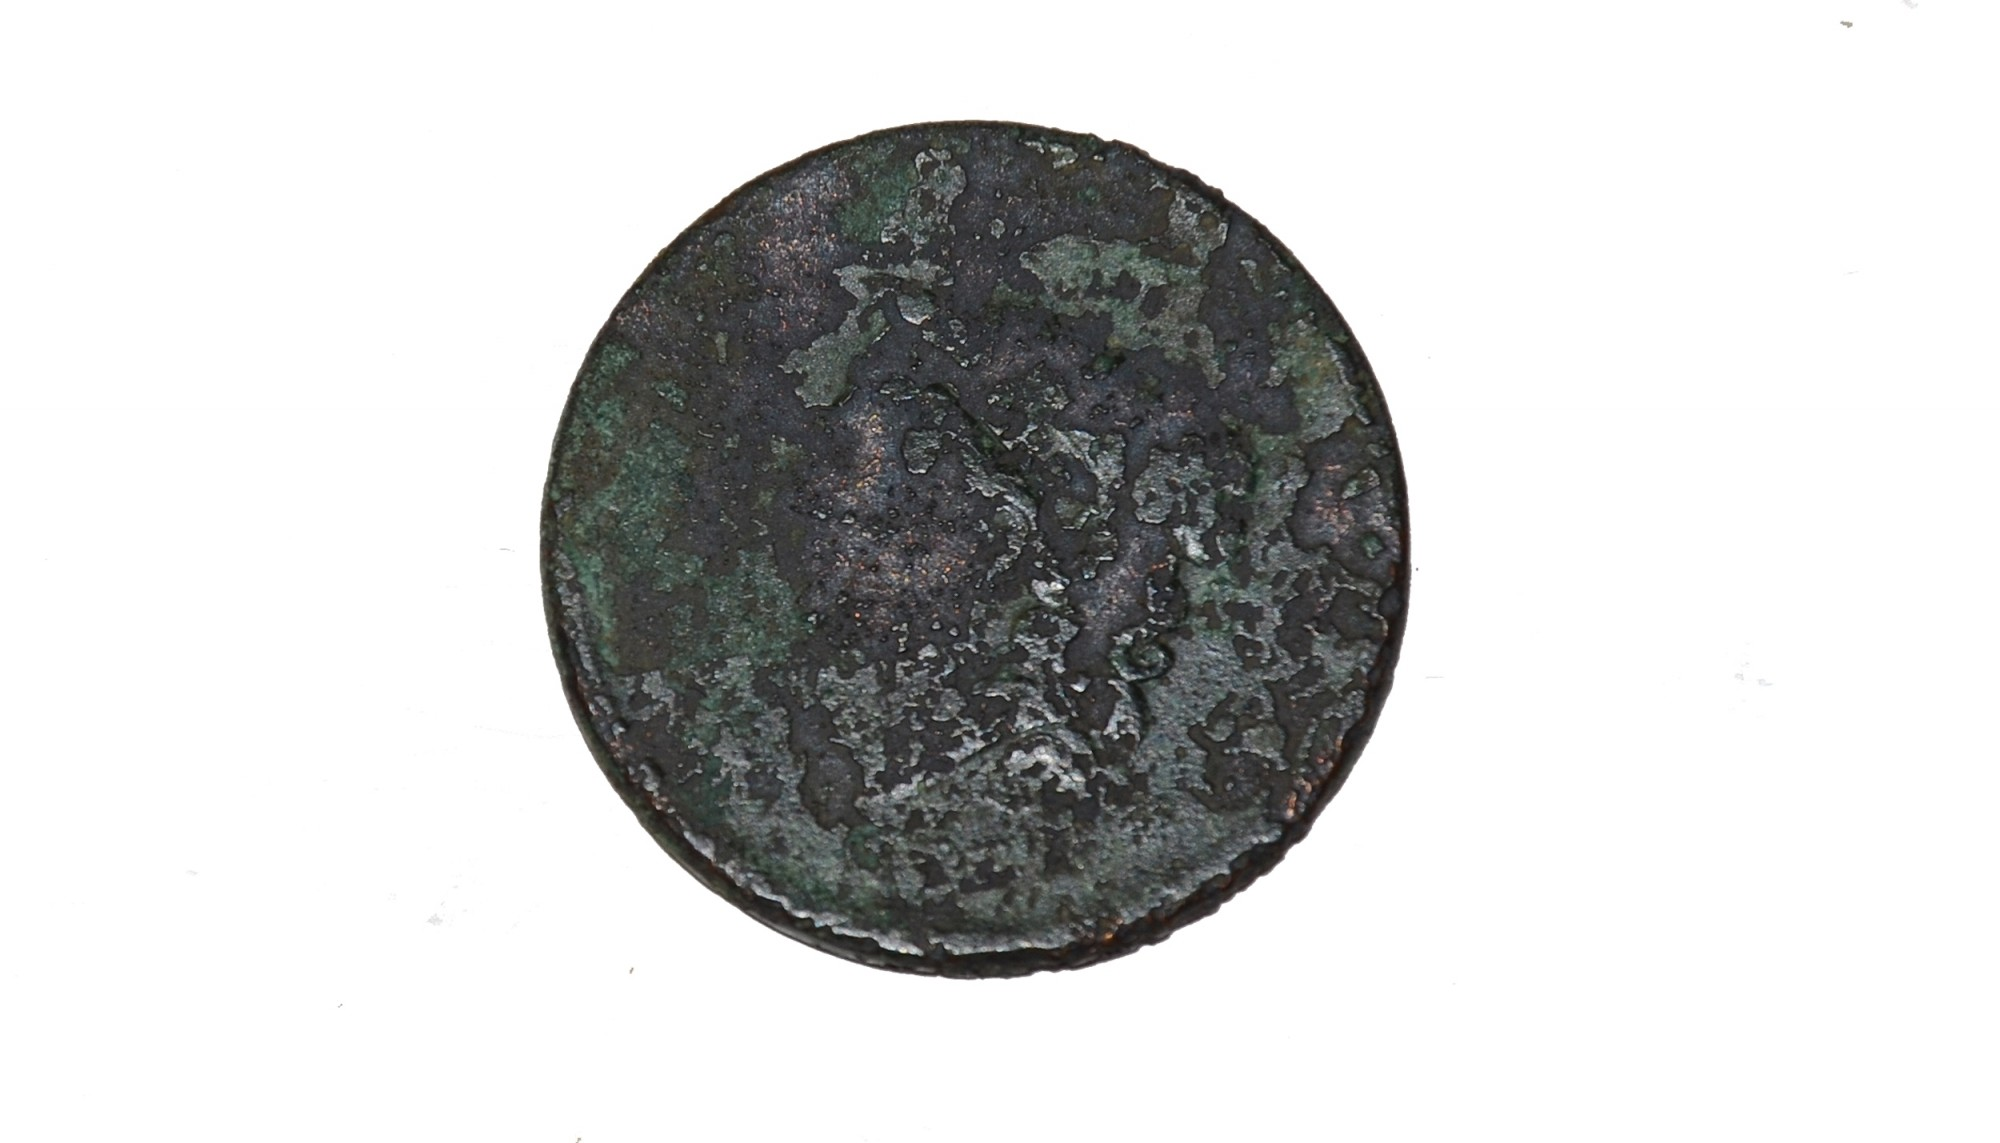 LARGE CENT RECOVERED NEAR EAST CAVALRY FIELD AT GETTYSBURG